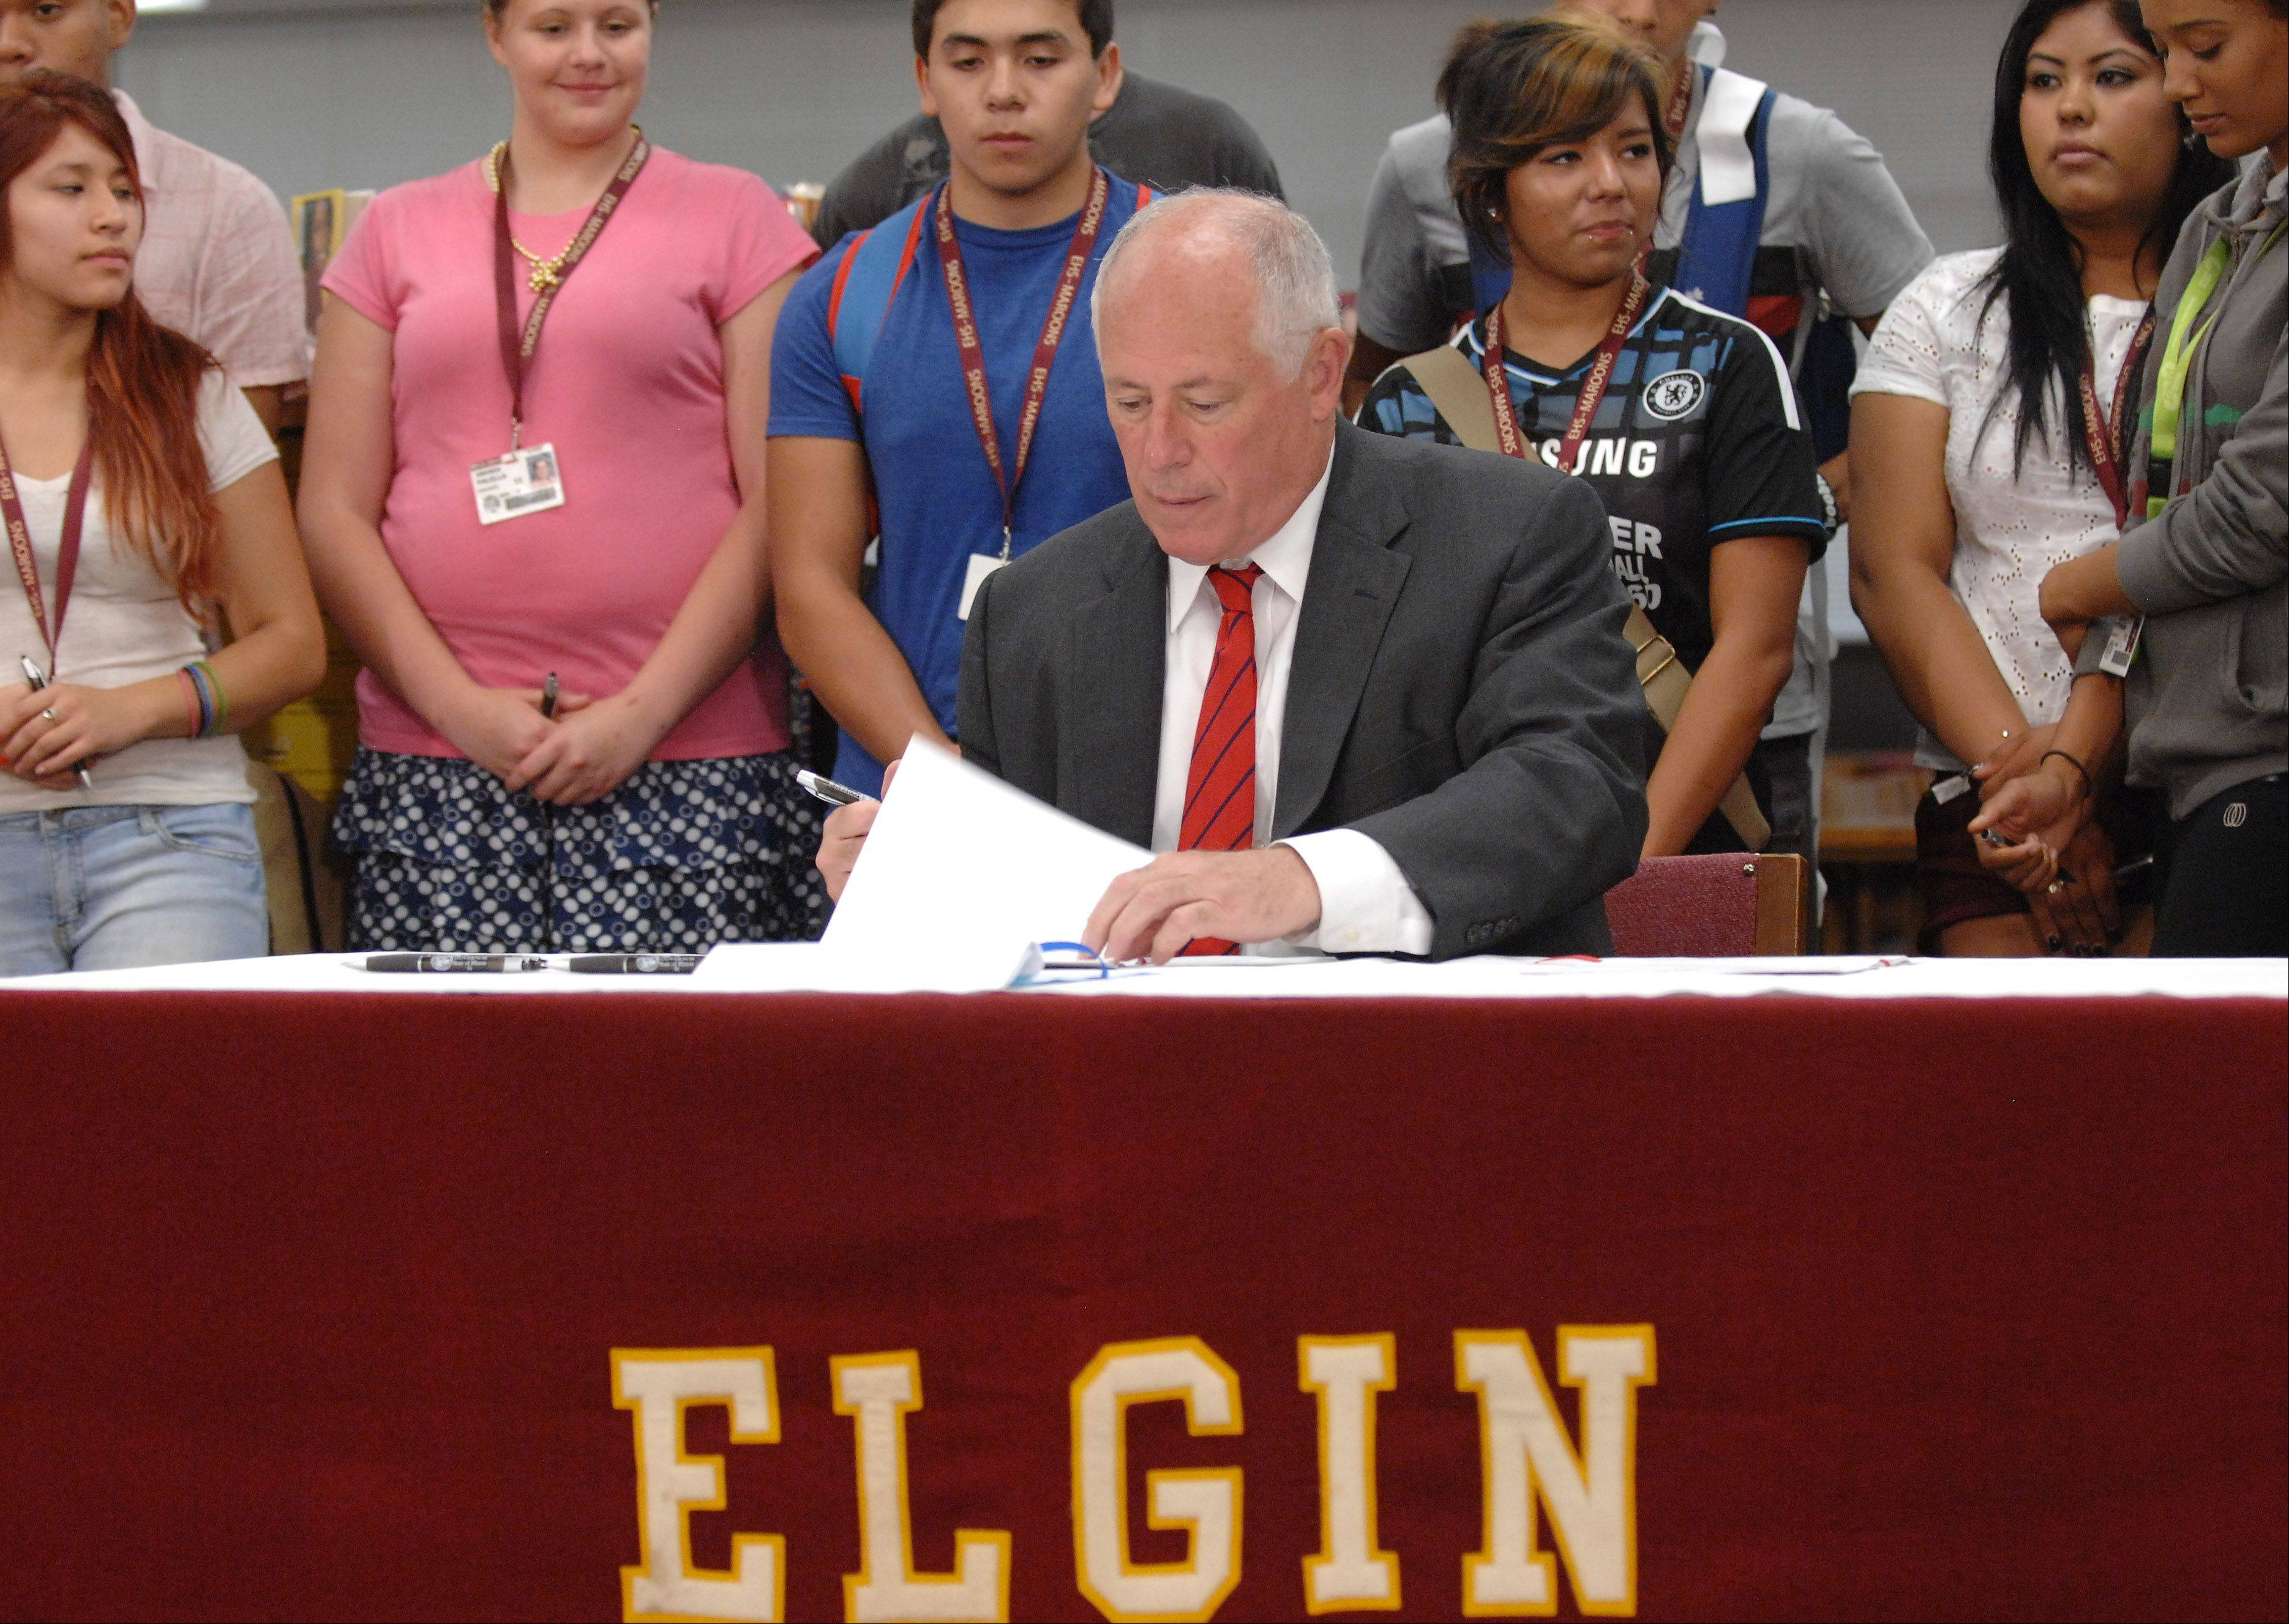 Gov. Pat Quinn signs a bill at Elgin High School Monday that will allow the police to share information with schools if there is an investigation of a student. The bill is in response to the attack on Elgin High School teacher Carolyn Gilbert.